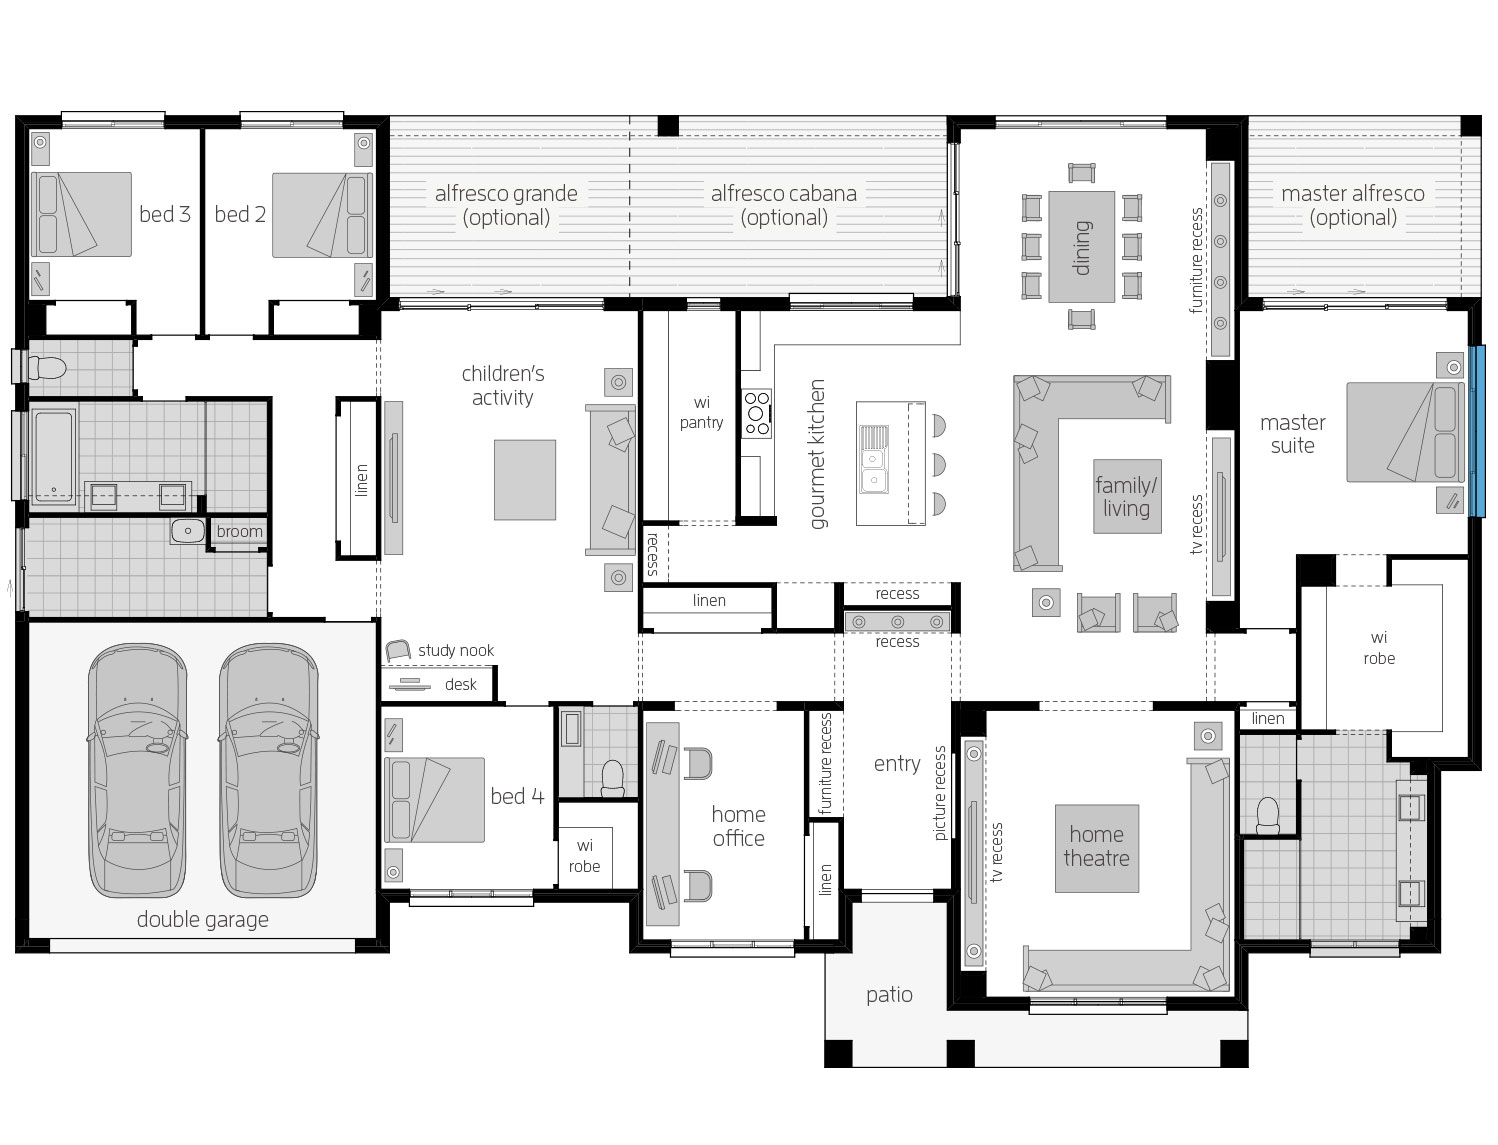 Floor Plan - Tuscany - Country Home Design - McDonald Jones